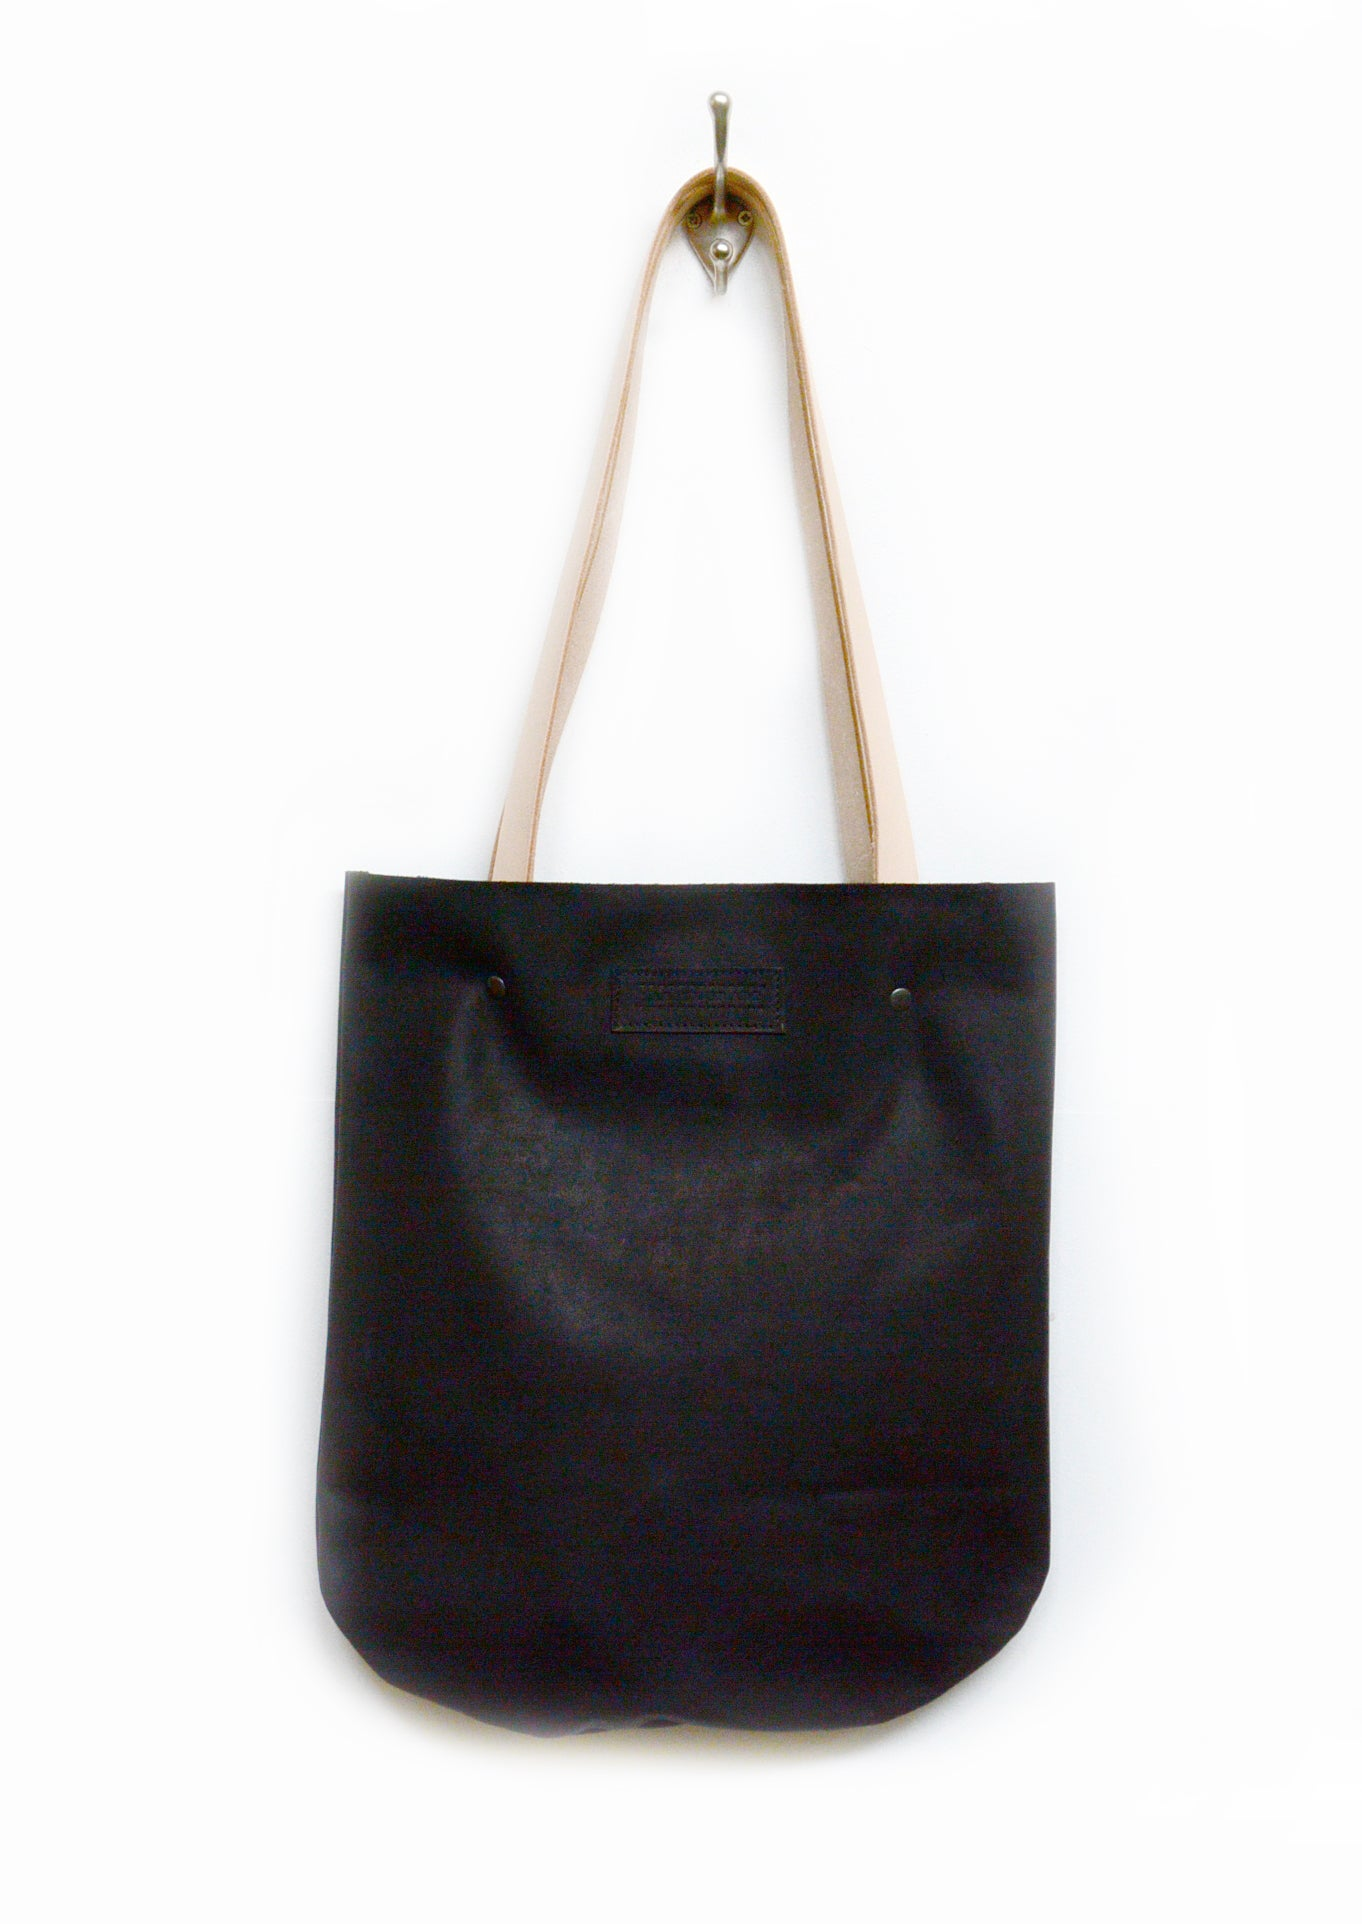 Image of Curved Black Leather Tote Bag